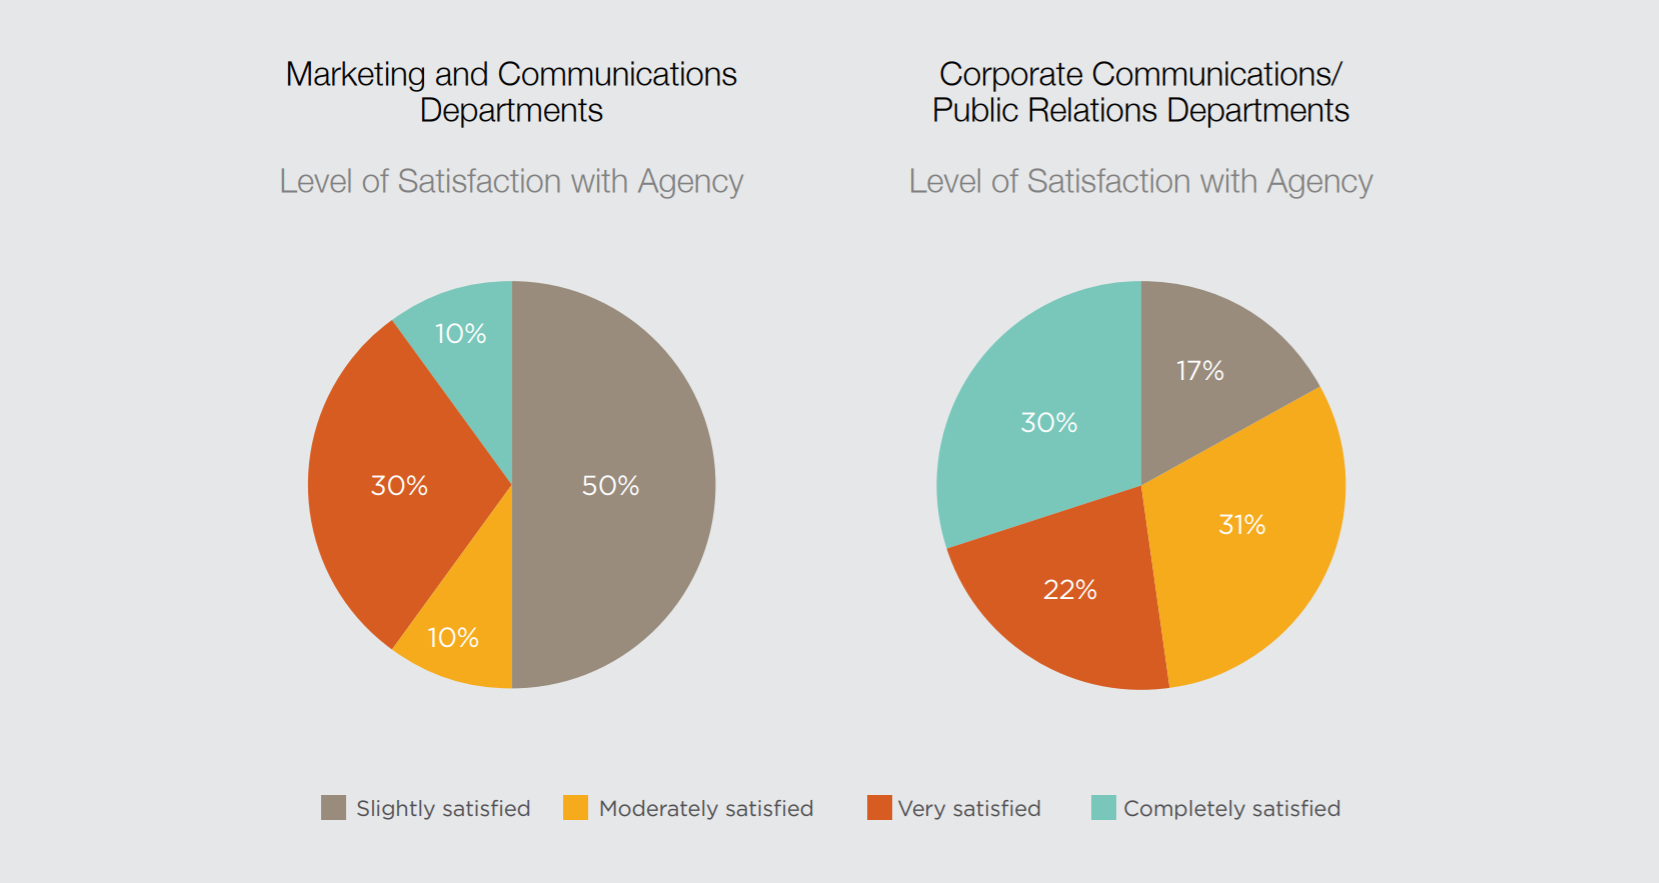 Differences Between Marketers and Corporate Communications Leaders